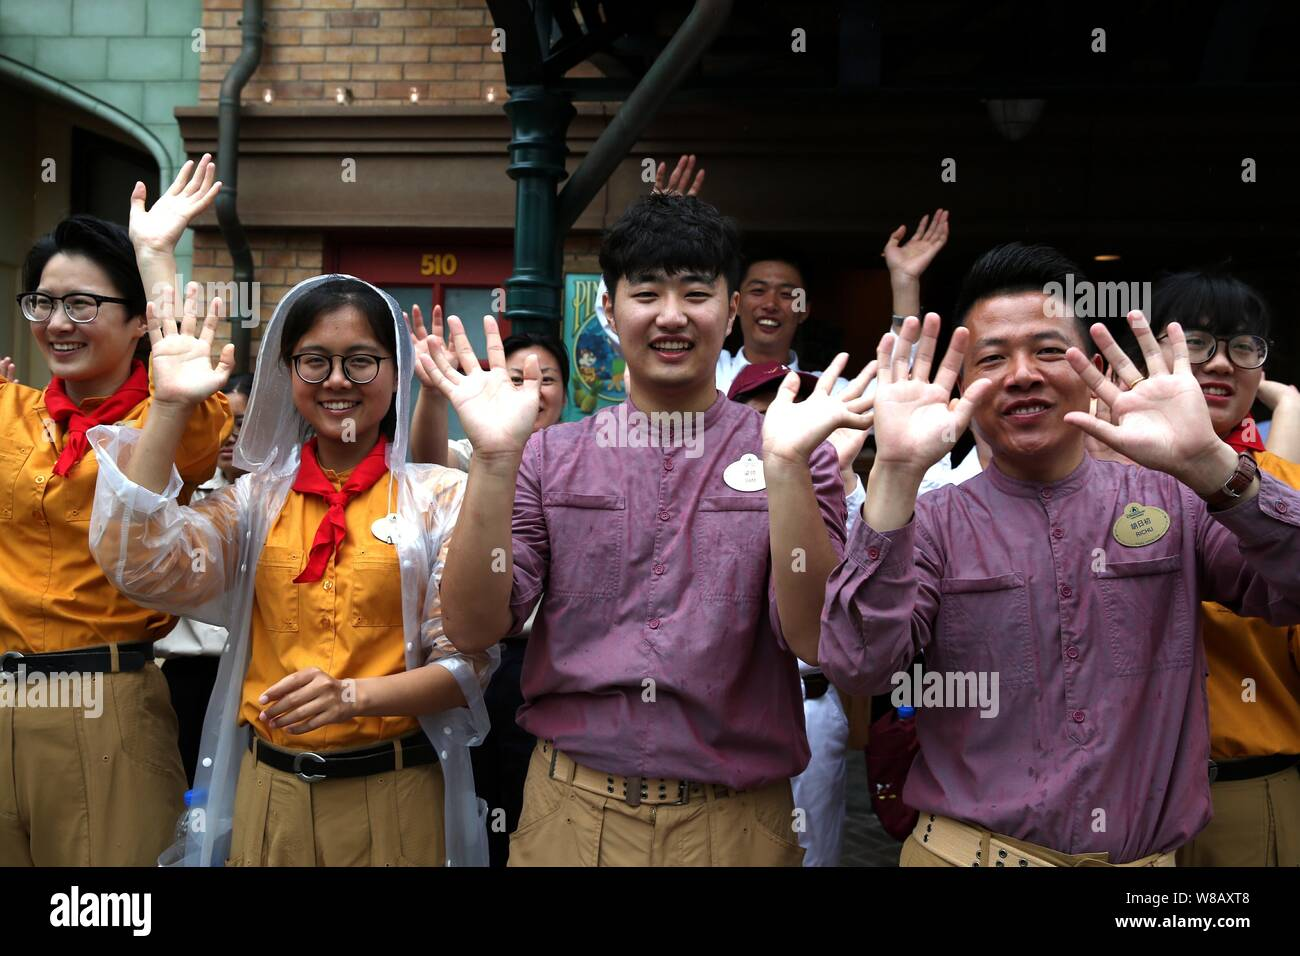 Employees wave to tourists during the opening ceremony of the Shanghai Disneyland at the Shanghai Disney Resort in Pudong, Shanghai, China, 16 June 20 Stock Photo